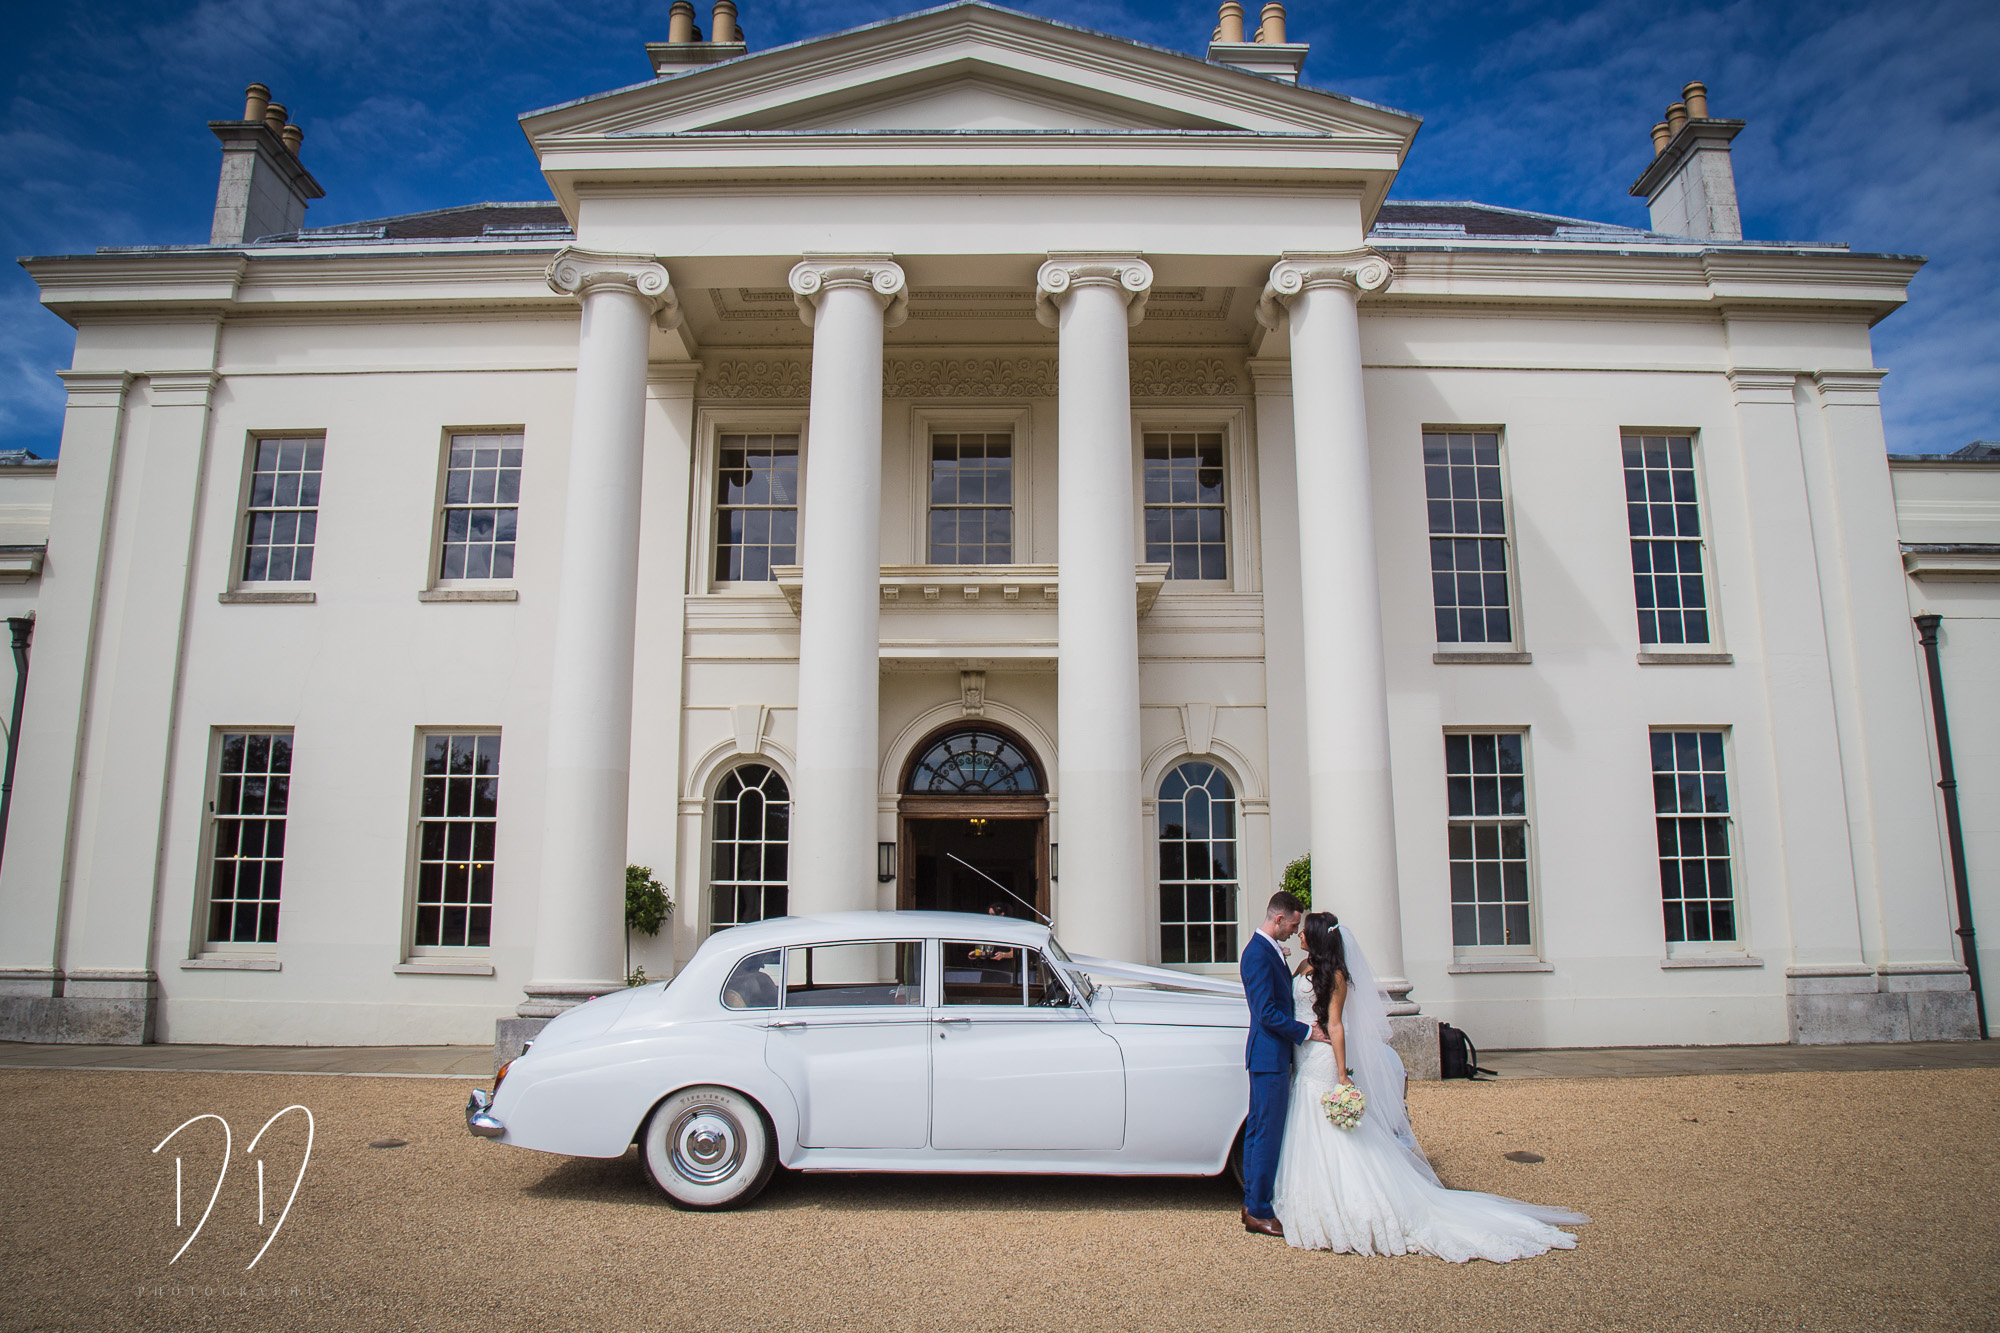 Image outside the front of Hylands House wedding venue in Chelmsford. Couple in front of white wedding car.